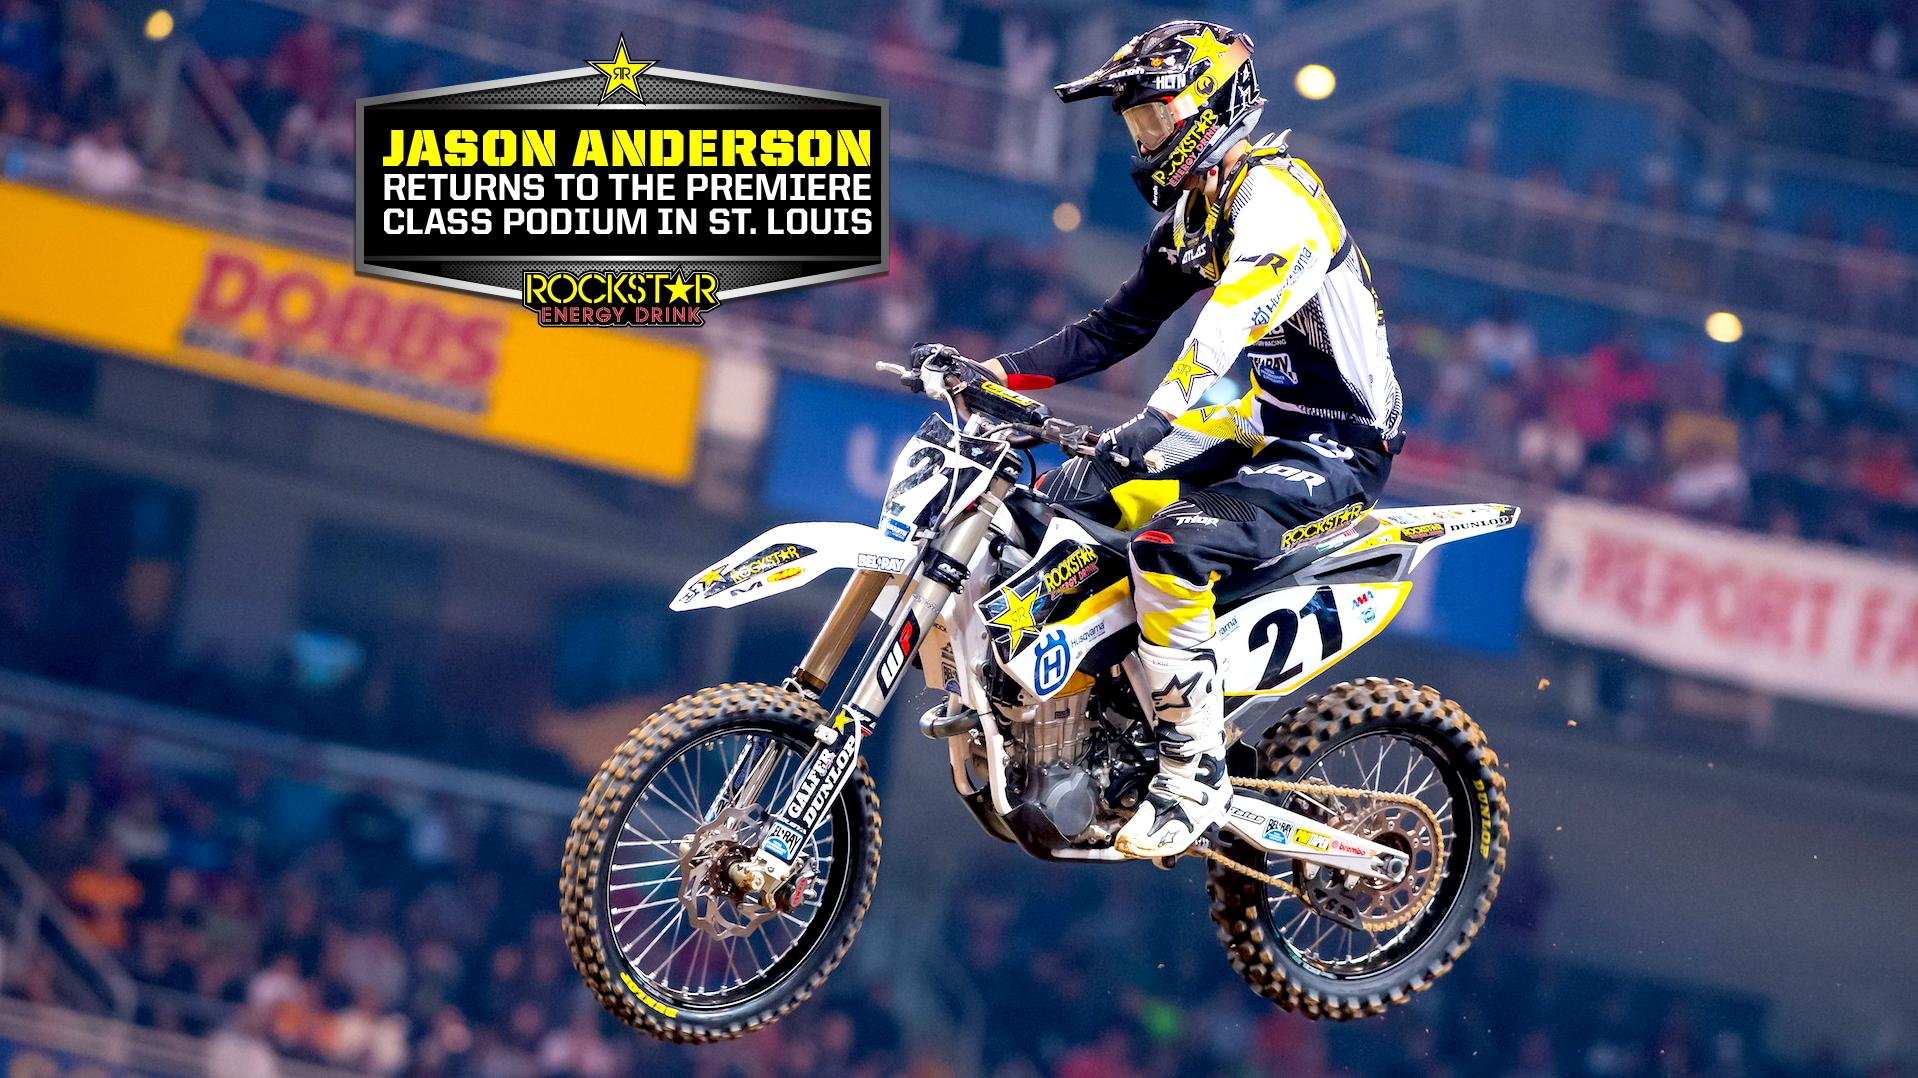 Anderson Puts in Stellar Ride in St. Louis